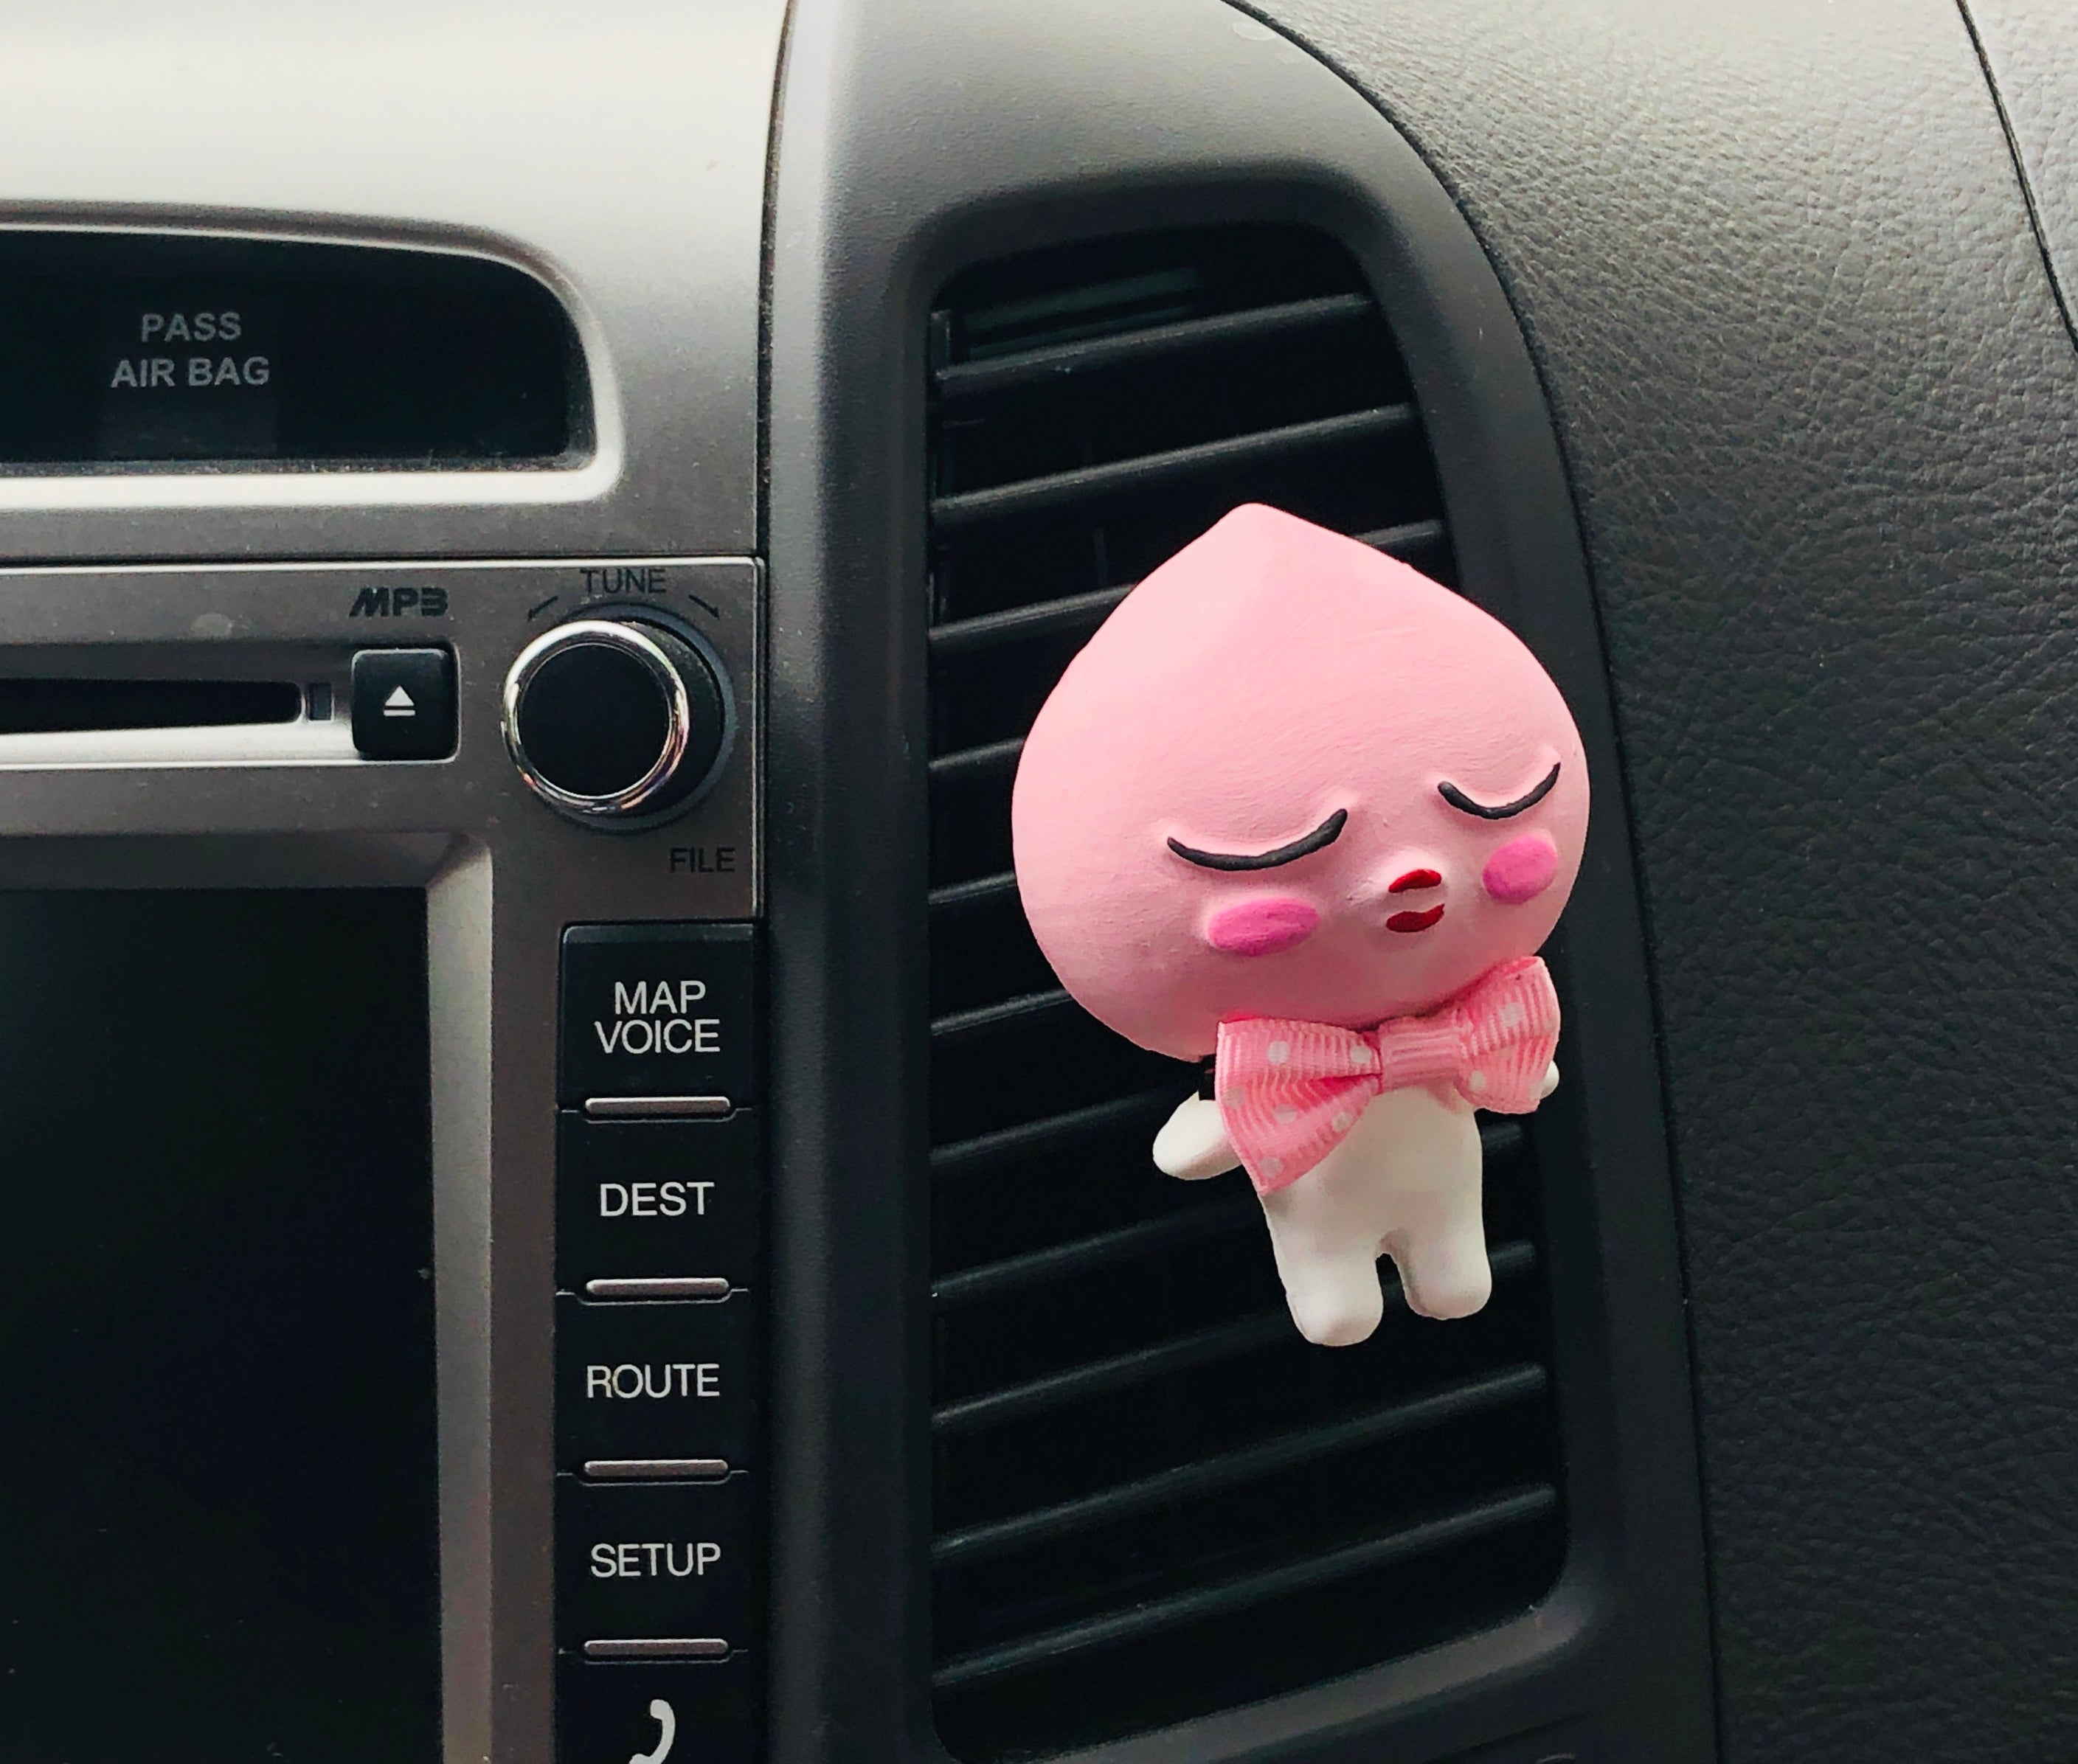 APEACH PLASTER CAR AIR FRESHENER